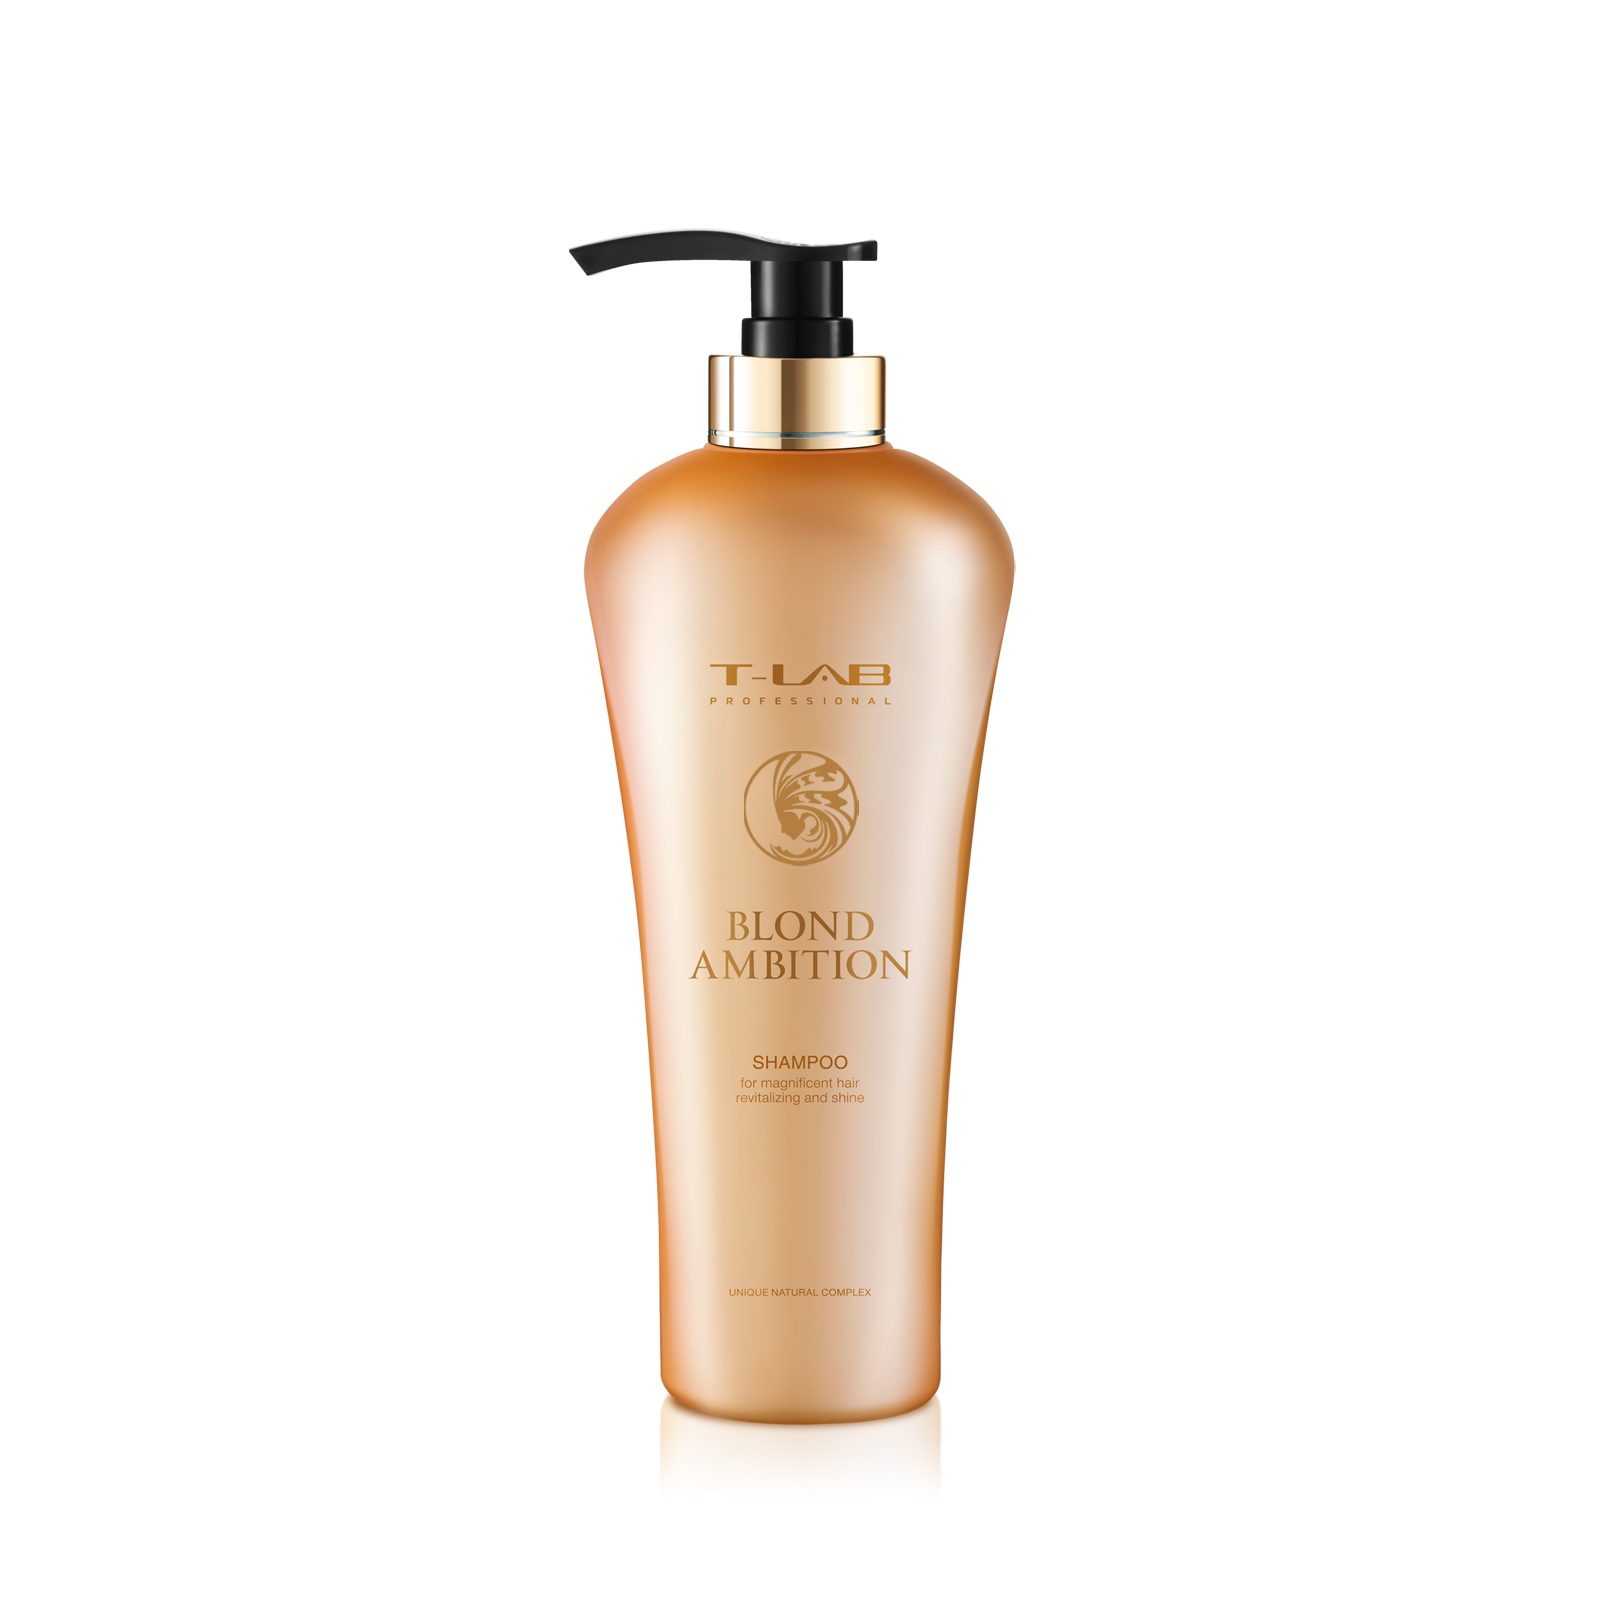 BLOND AMBITION SHAMPOO 750 ml